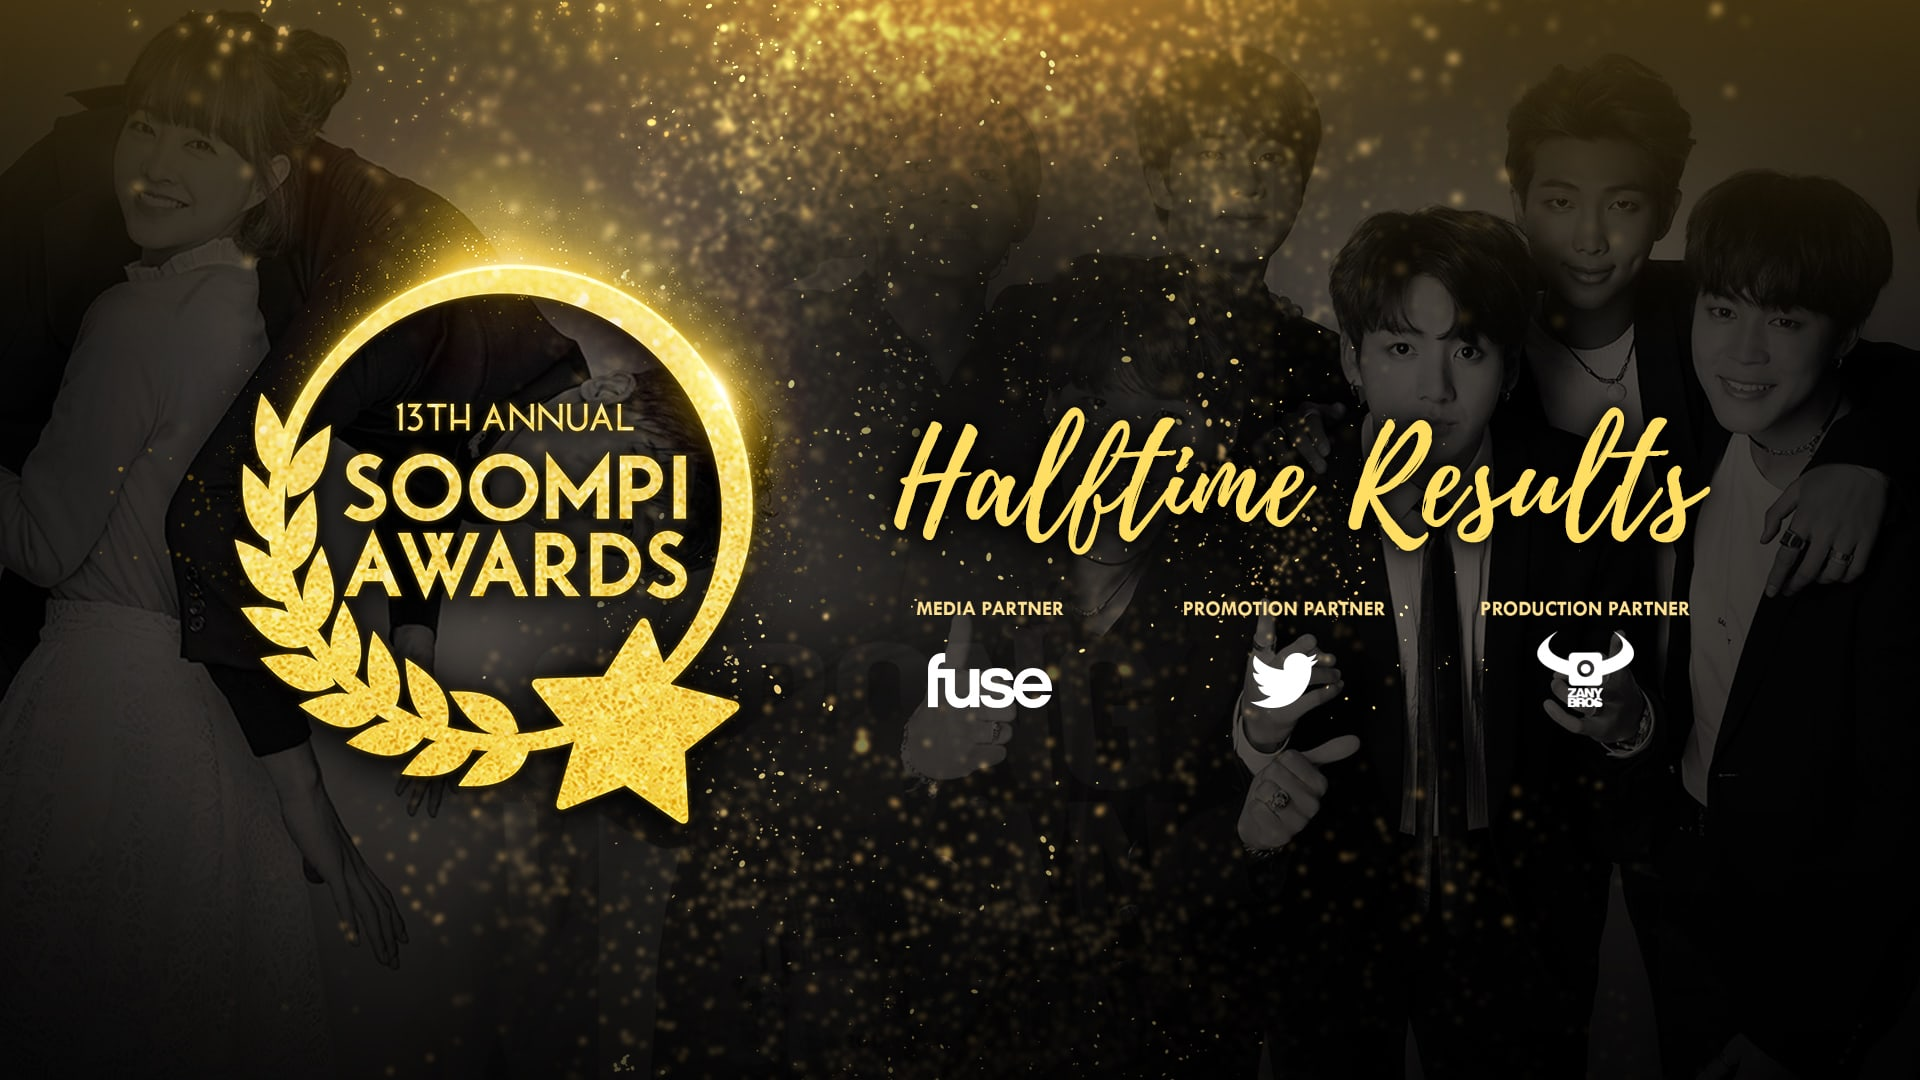 The 13th Annual Soompi Awards: Halftime Results